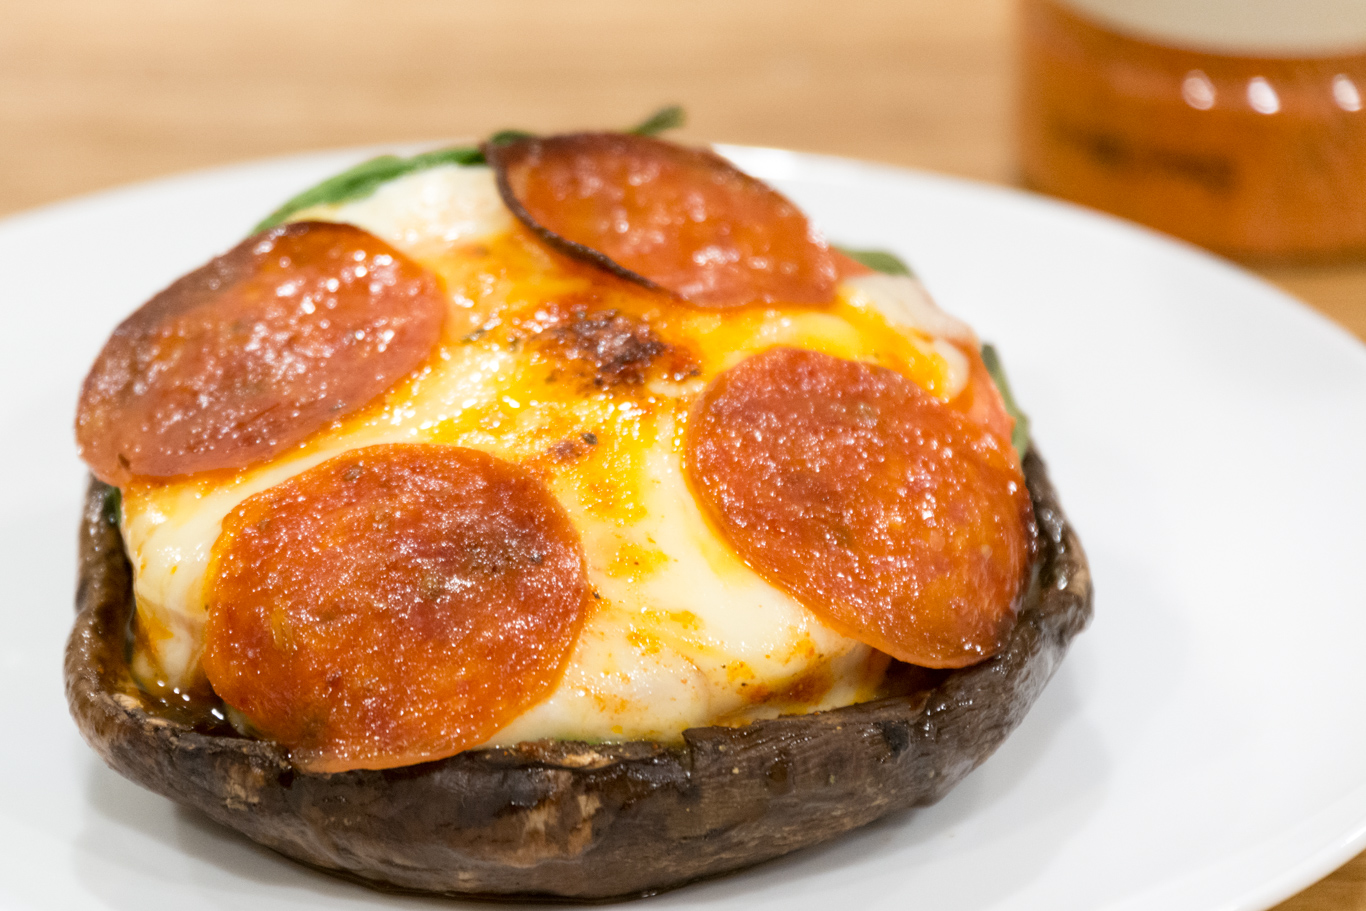 and crispy pepperoni as the portobello pizzas come out of the oven